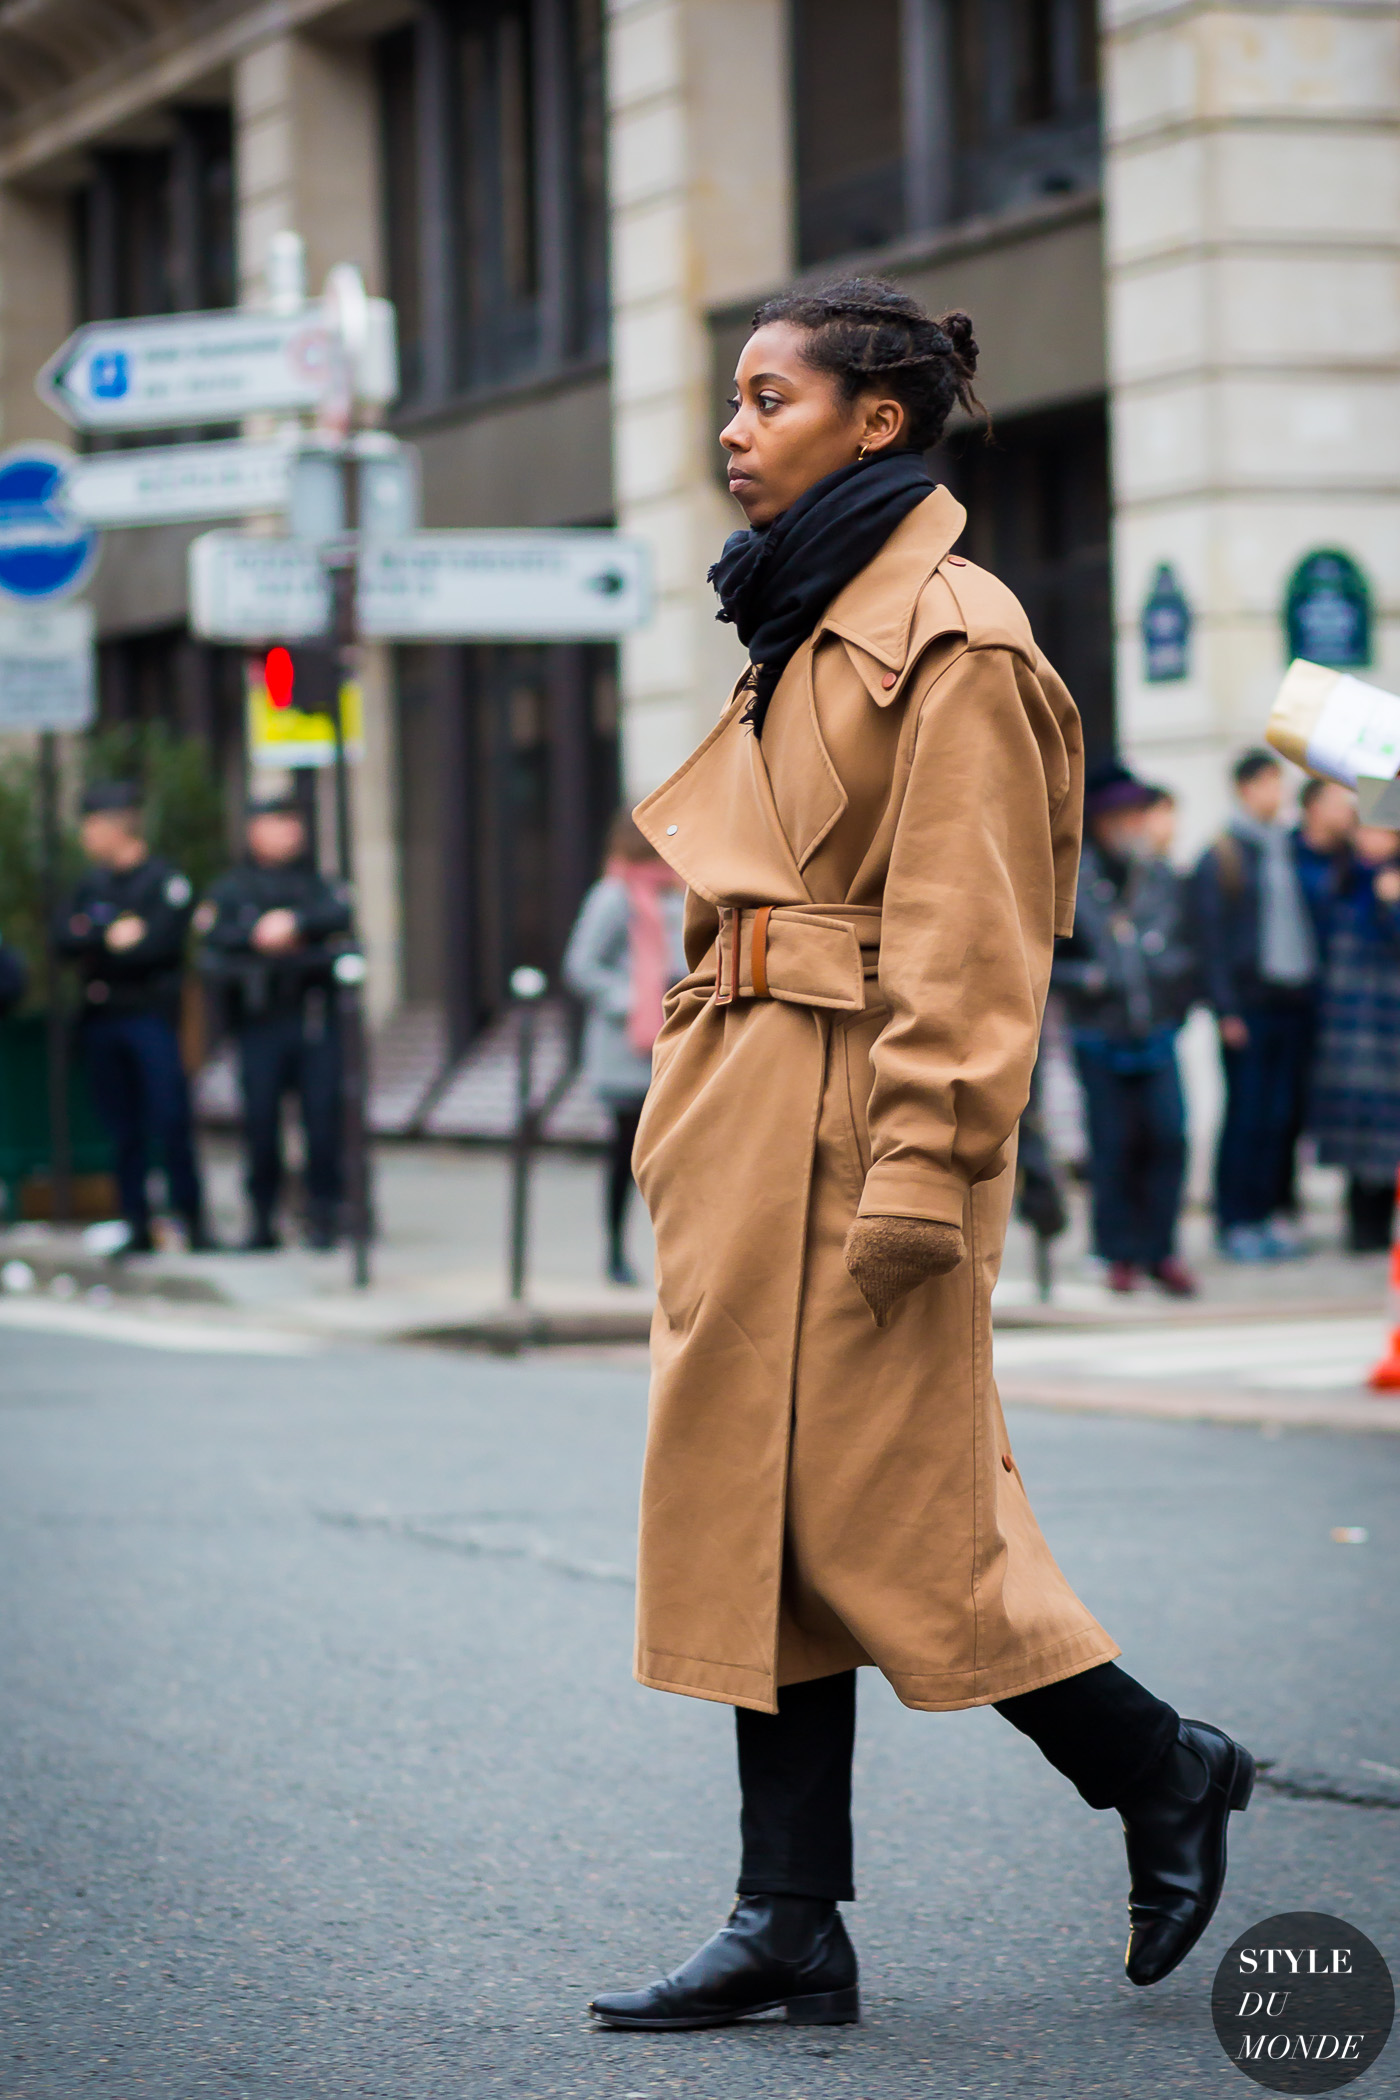 Azza Yousif Street Style Street Fashion Streetsnaps by STYLEDUMONDE Street Style Fashion Photography